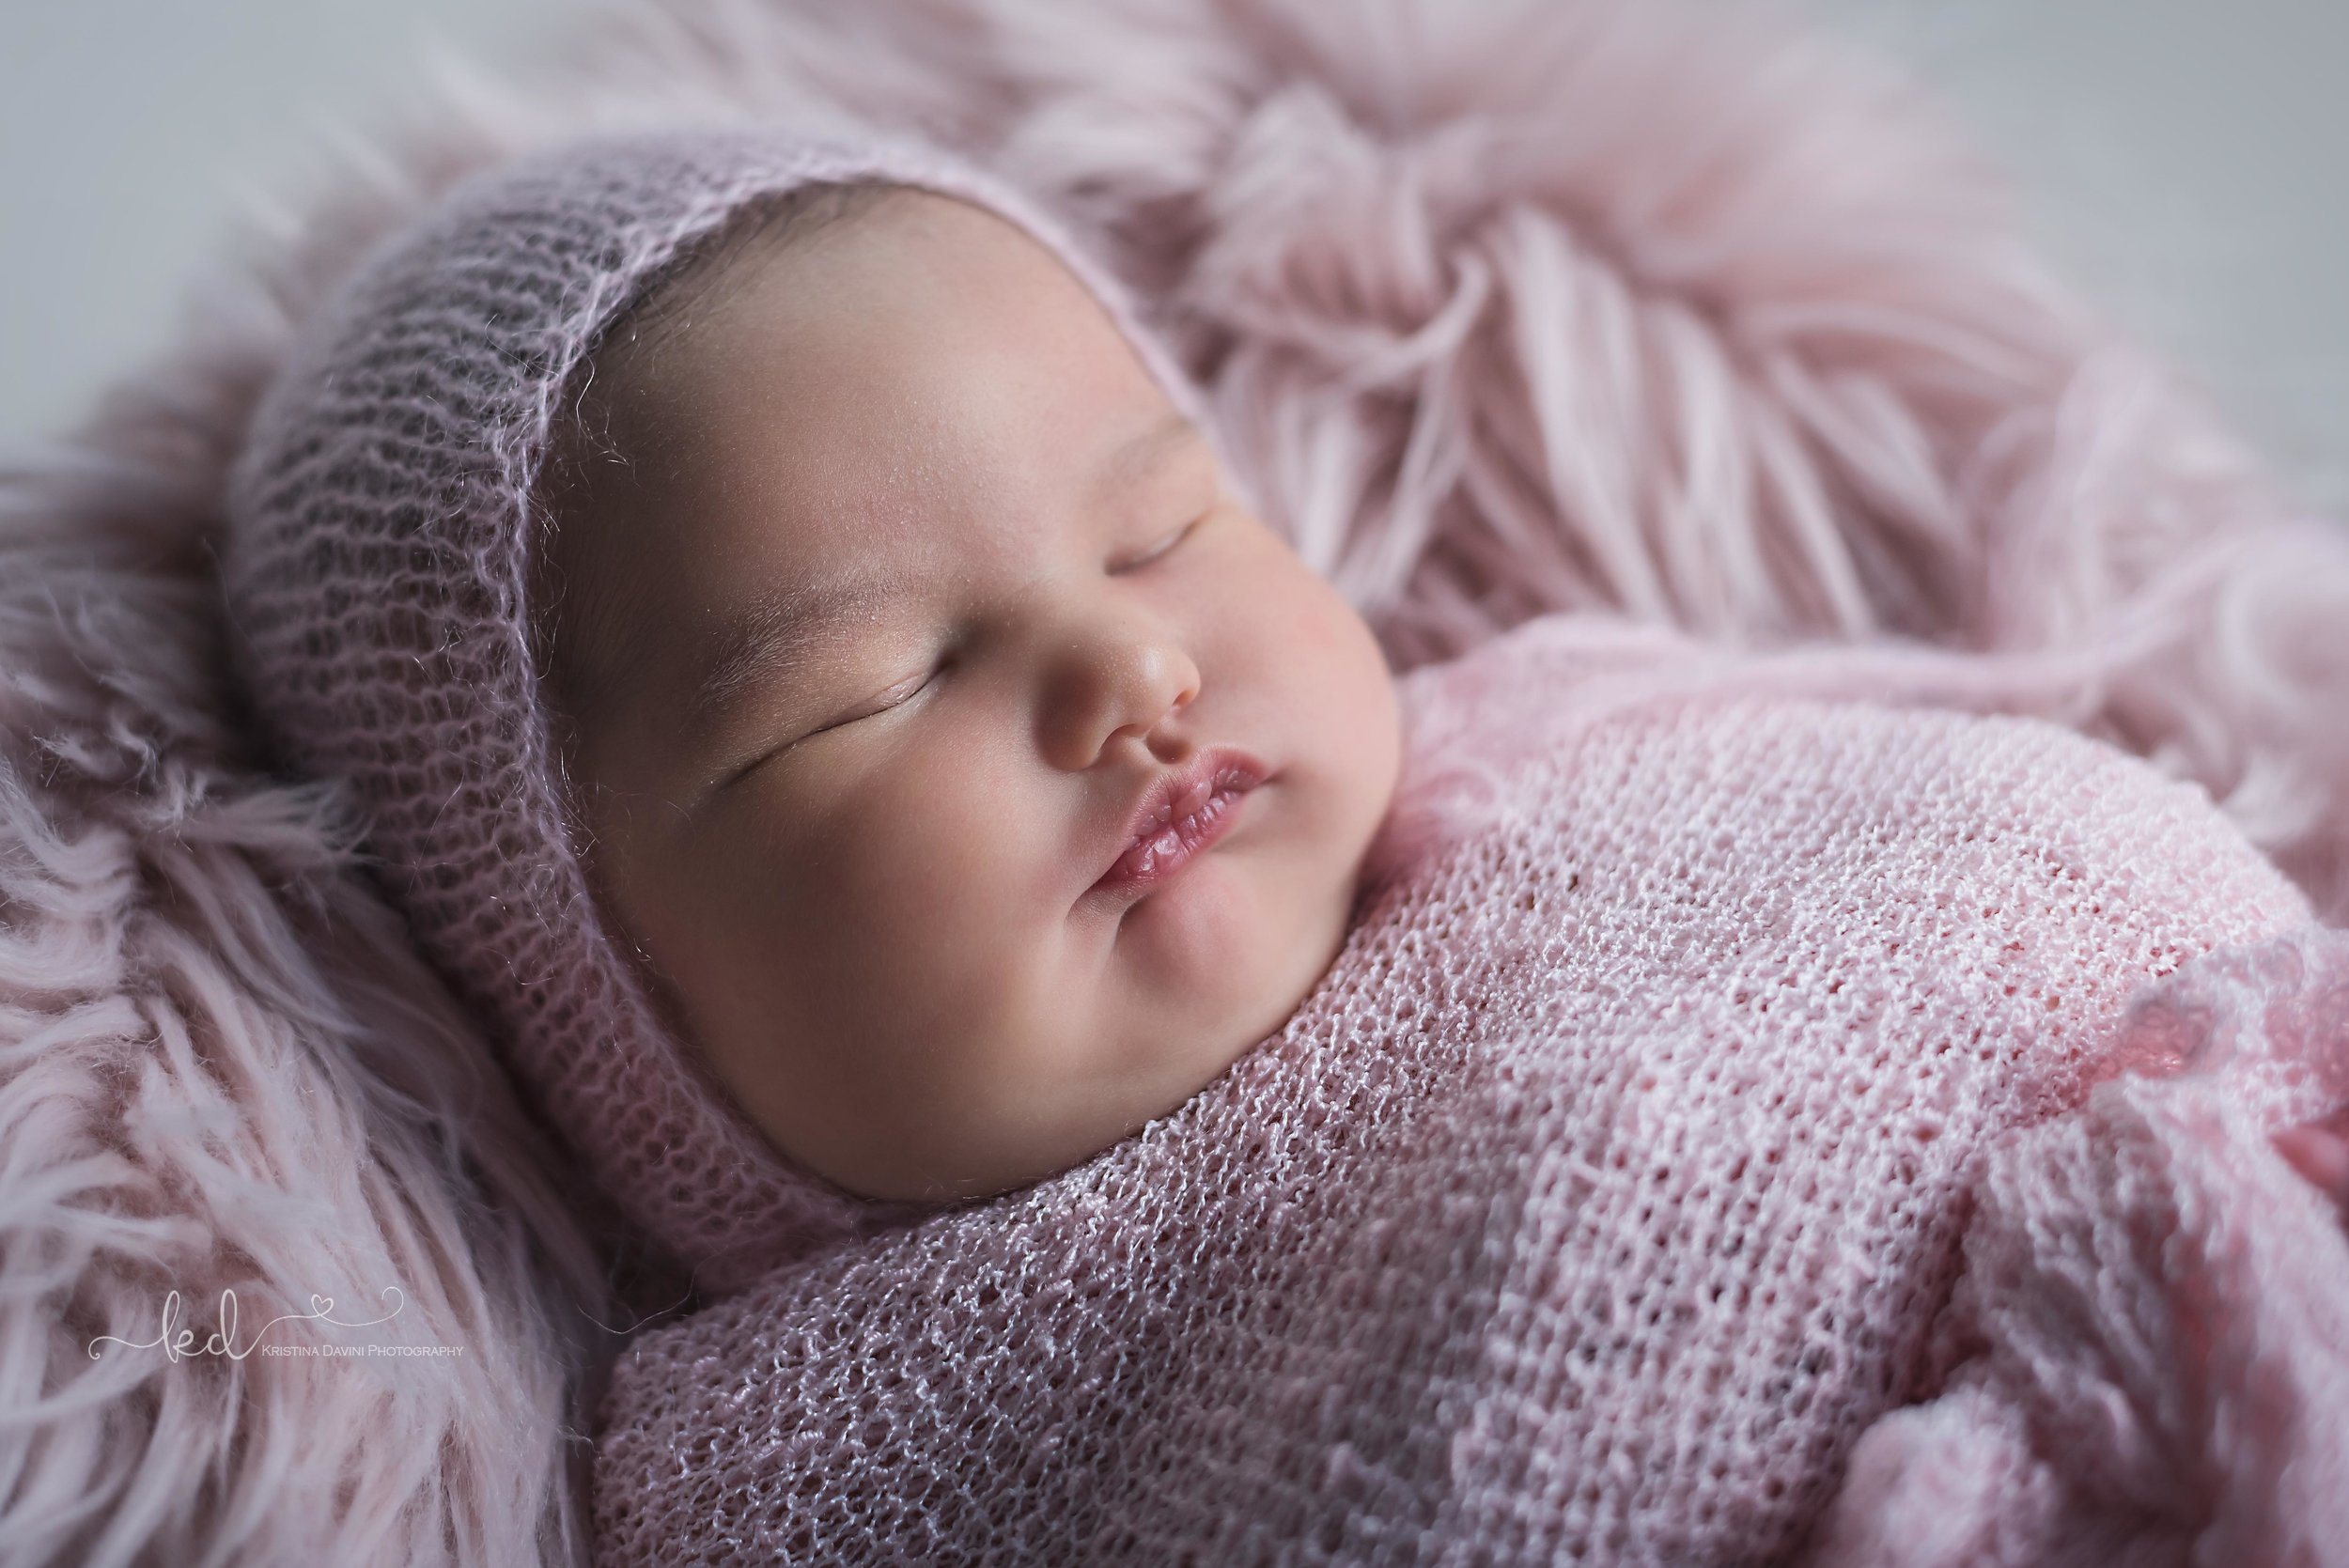 Baby Ekaterina, 7 days old